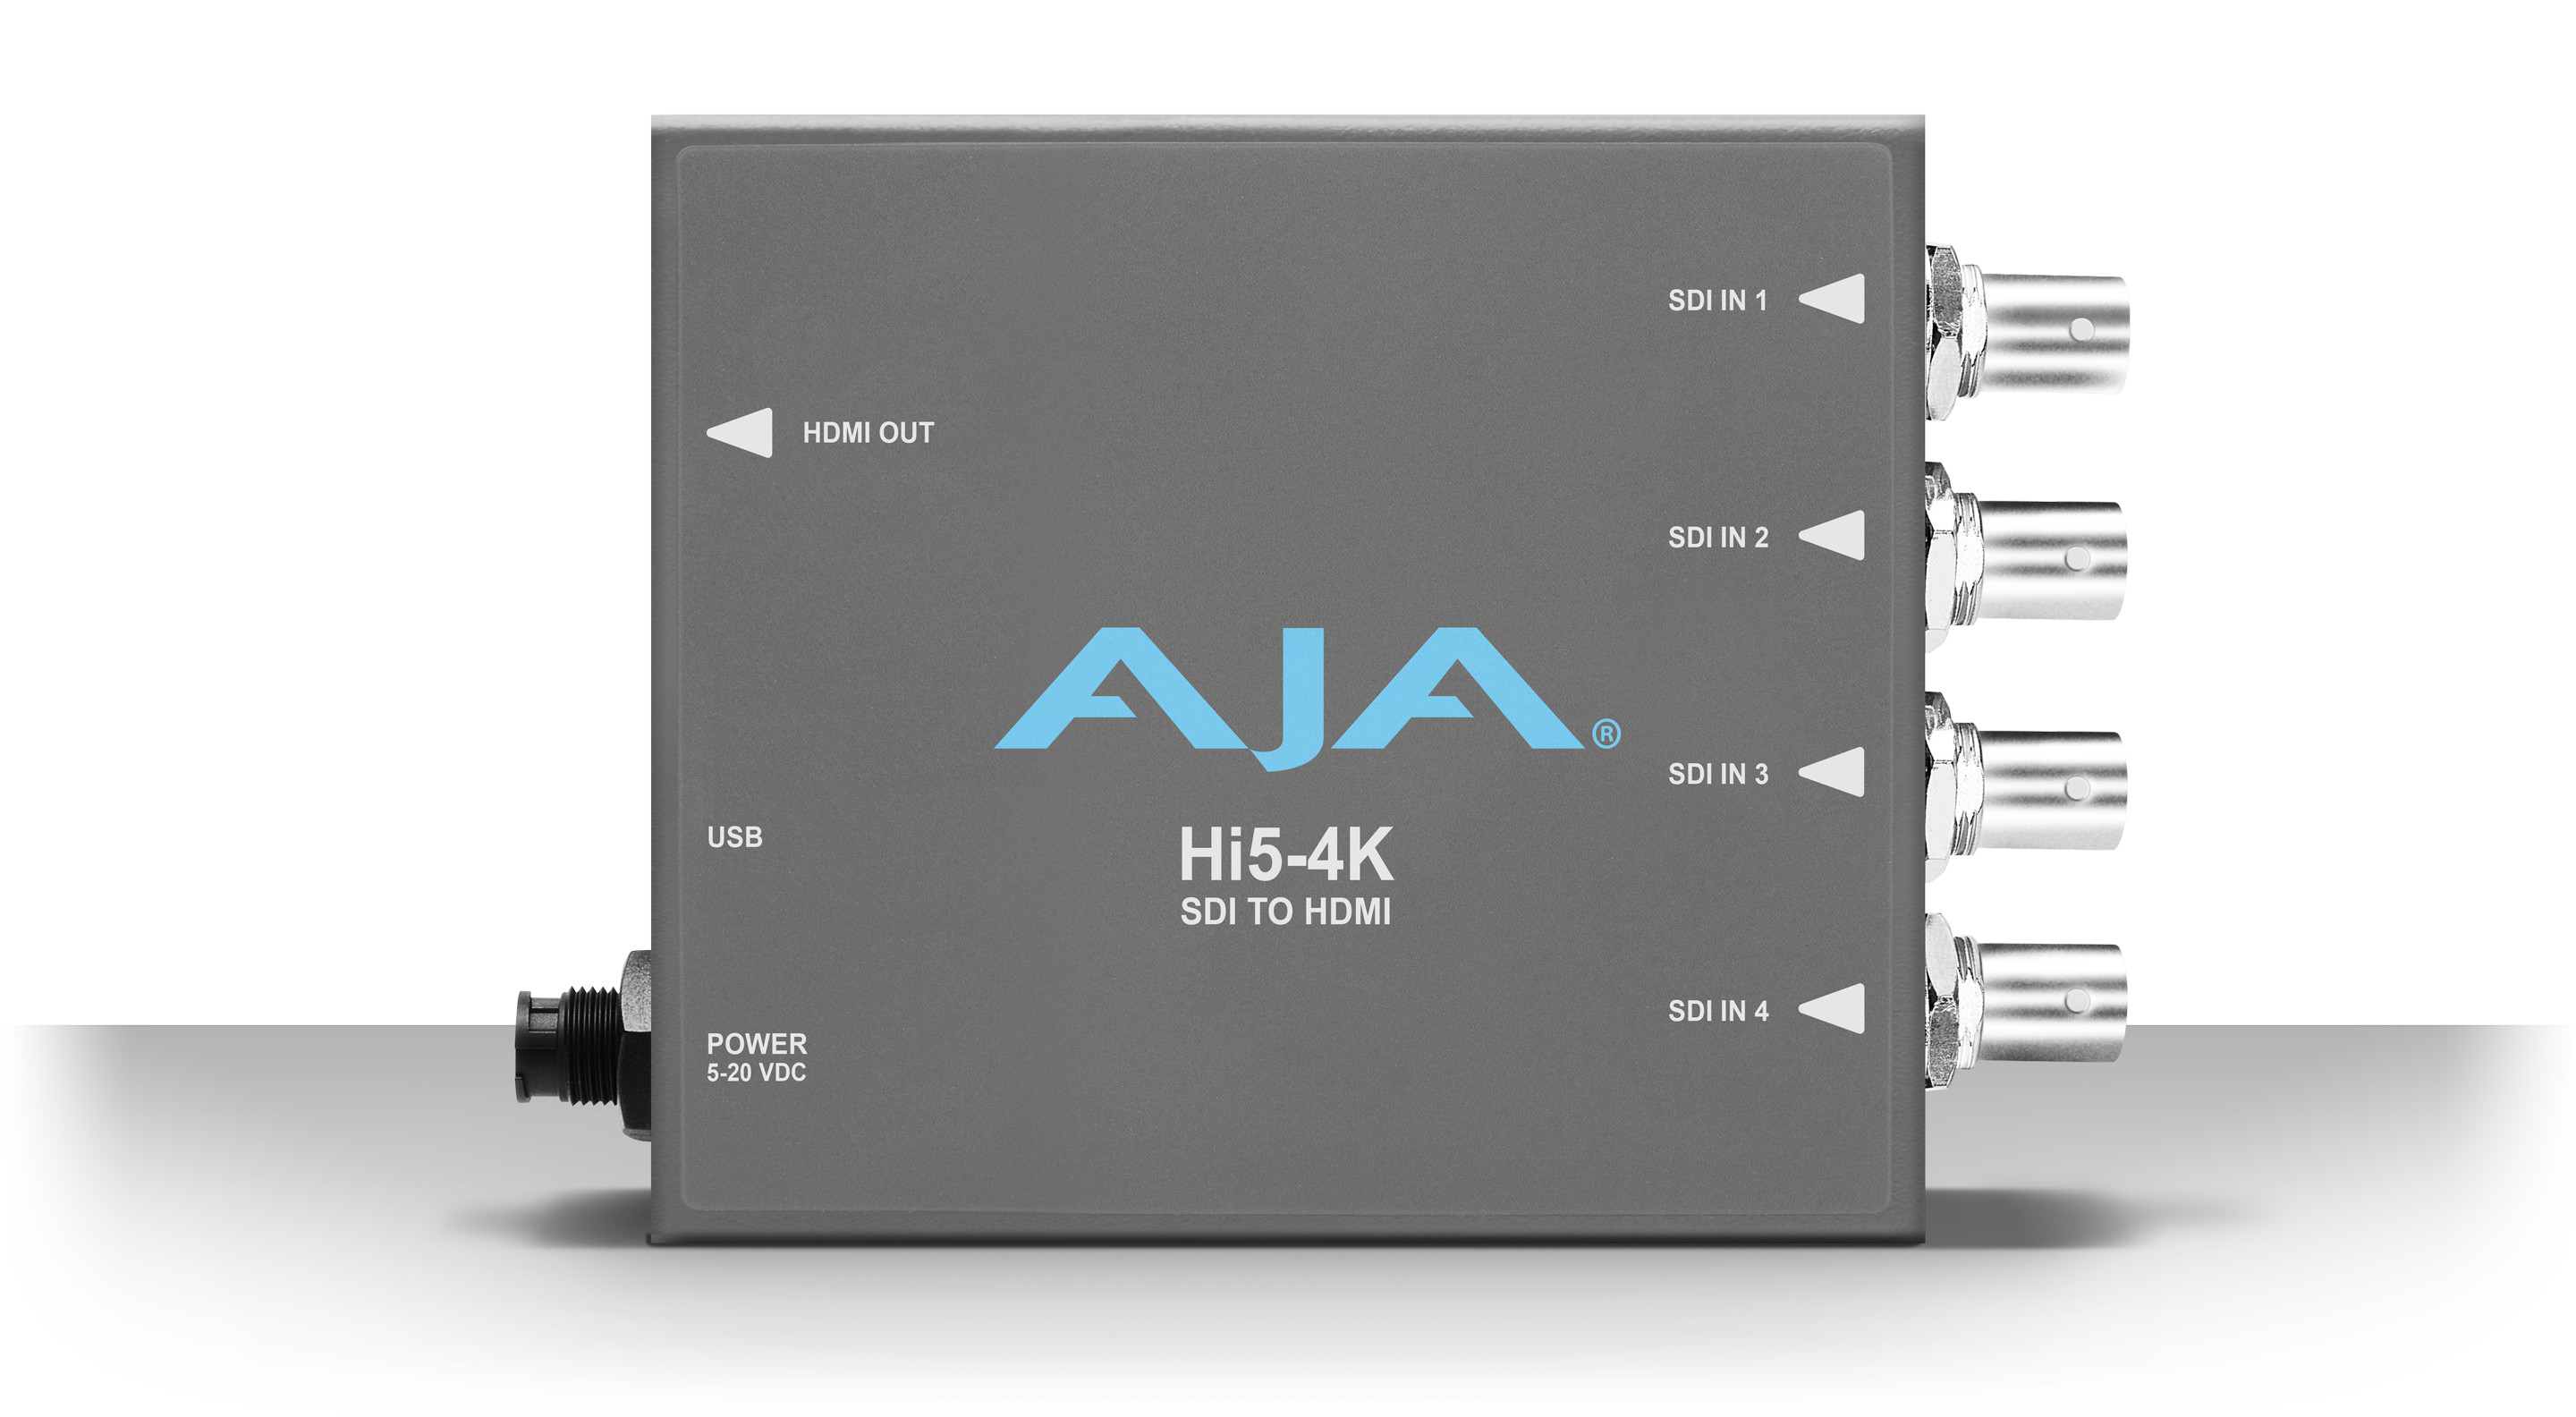 Hi5-4K - 4K SDI to 4K HDMI - Products - AJA Video Systems